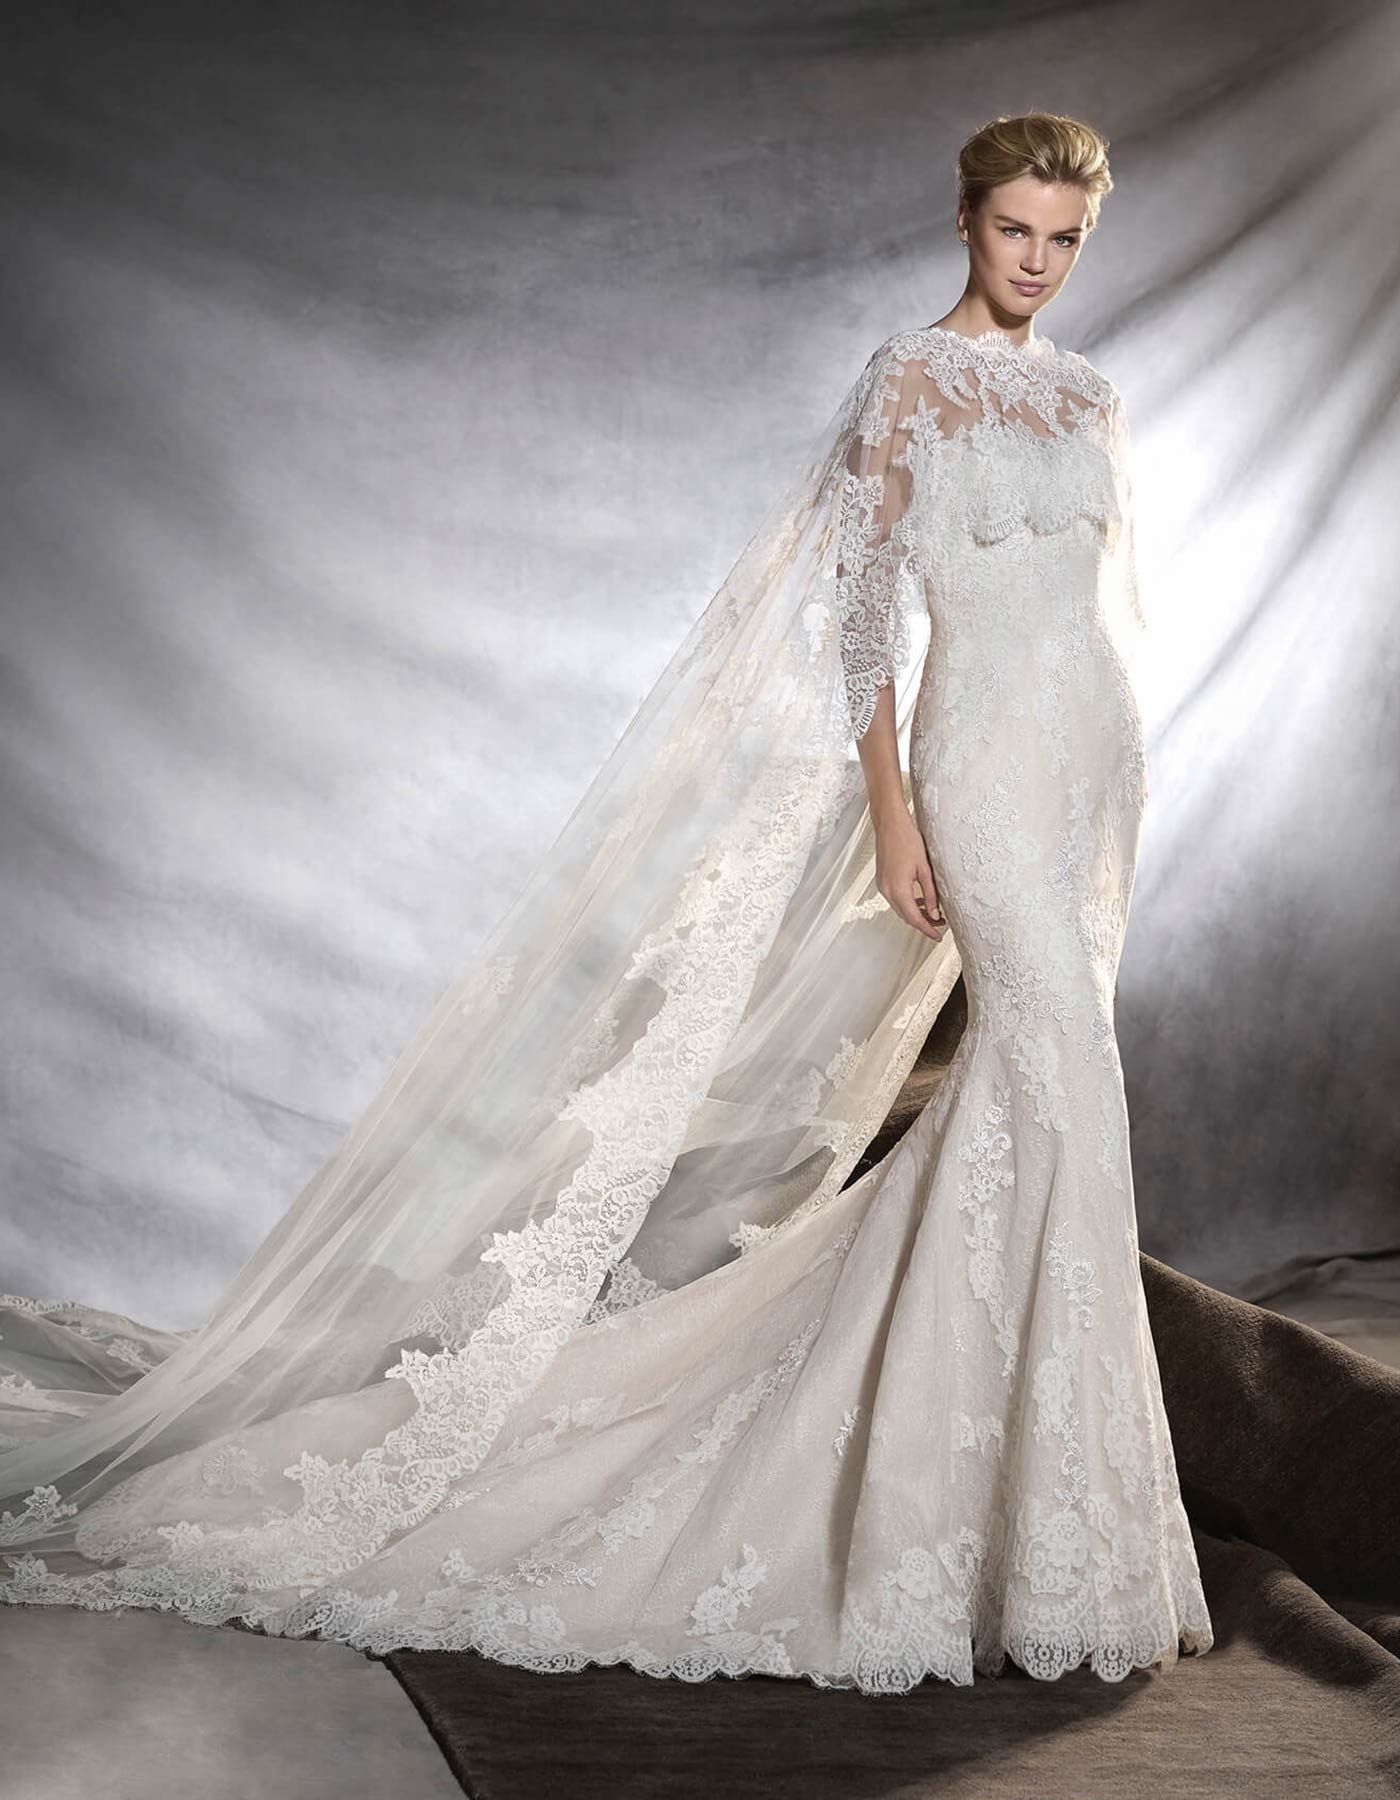 Pronovias Oringo wedding dress in lace with cape, Melbourne